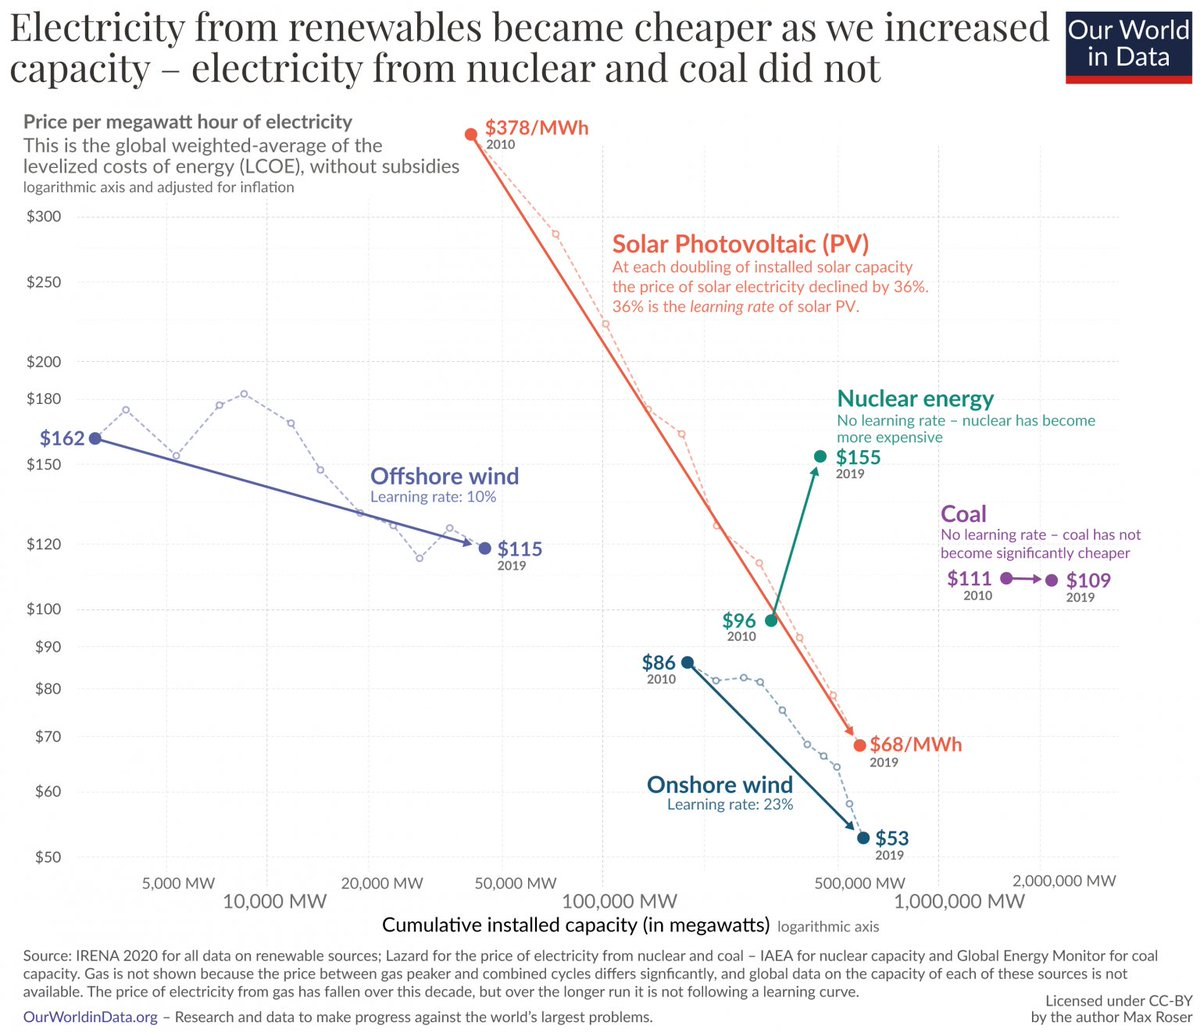 To knock fossil fuels out of the energy system, low-carbon technologies have to be cheap  Thankfully renewable costs are falling rapidly  This is the trend that makes me most optimistic about our ability to tackle climate change  @MaxCRoser's latest post: